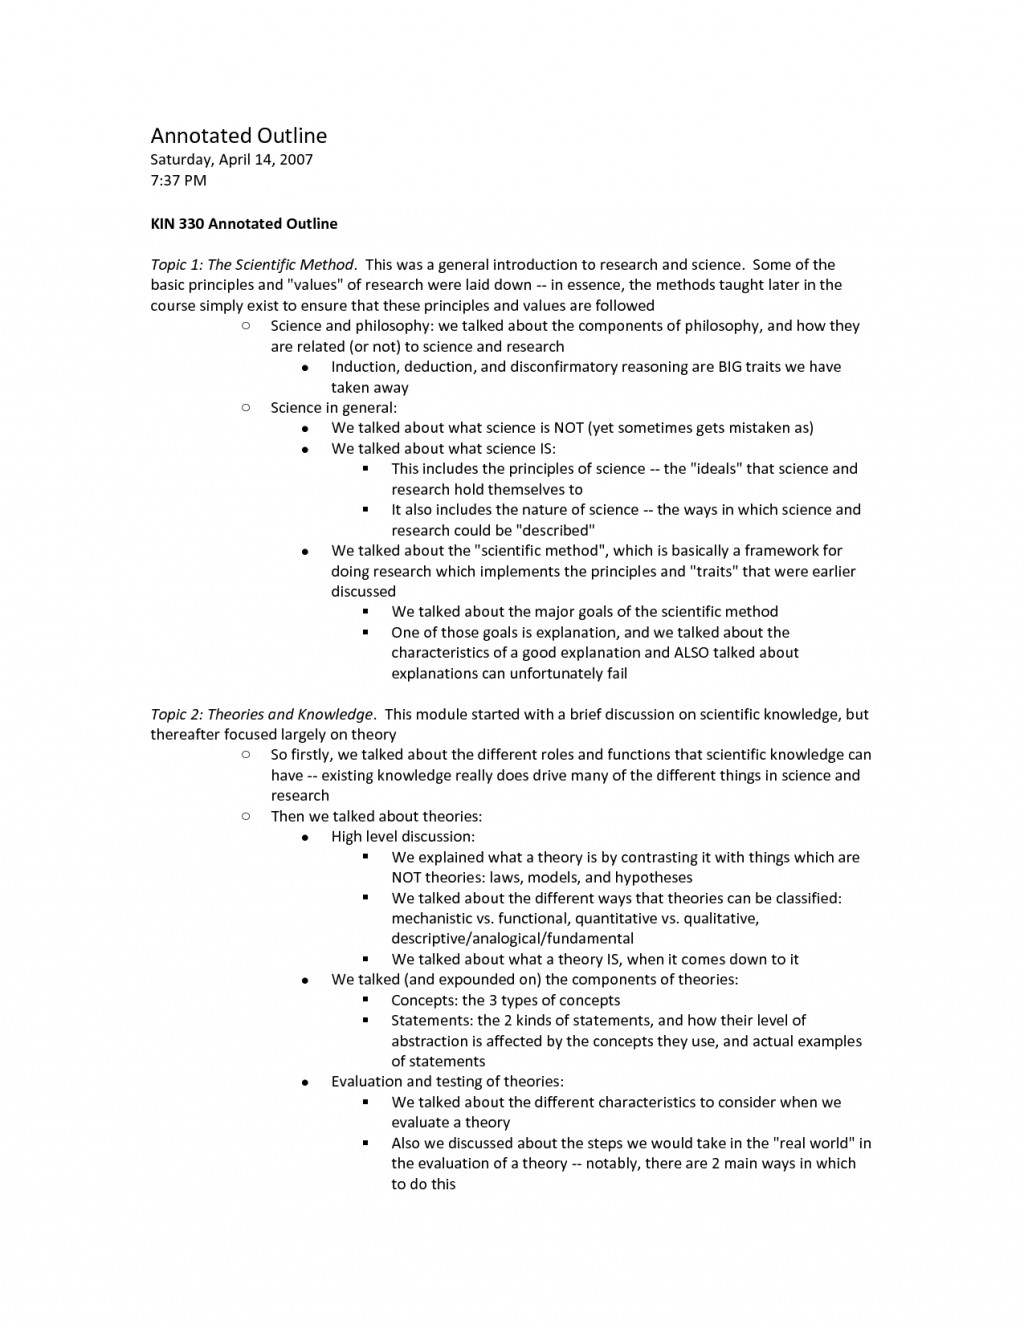 006 Apa Outline Format For Research Paper Sample Of Template L Dreaded Example Large